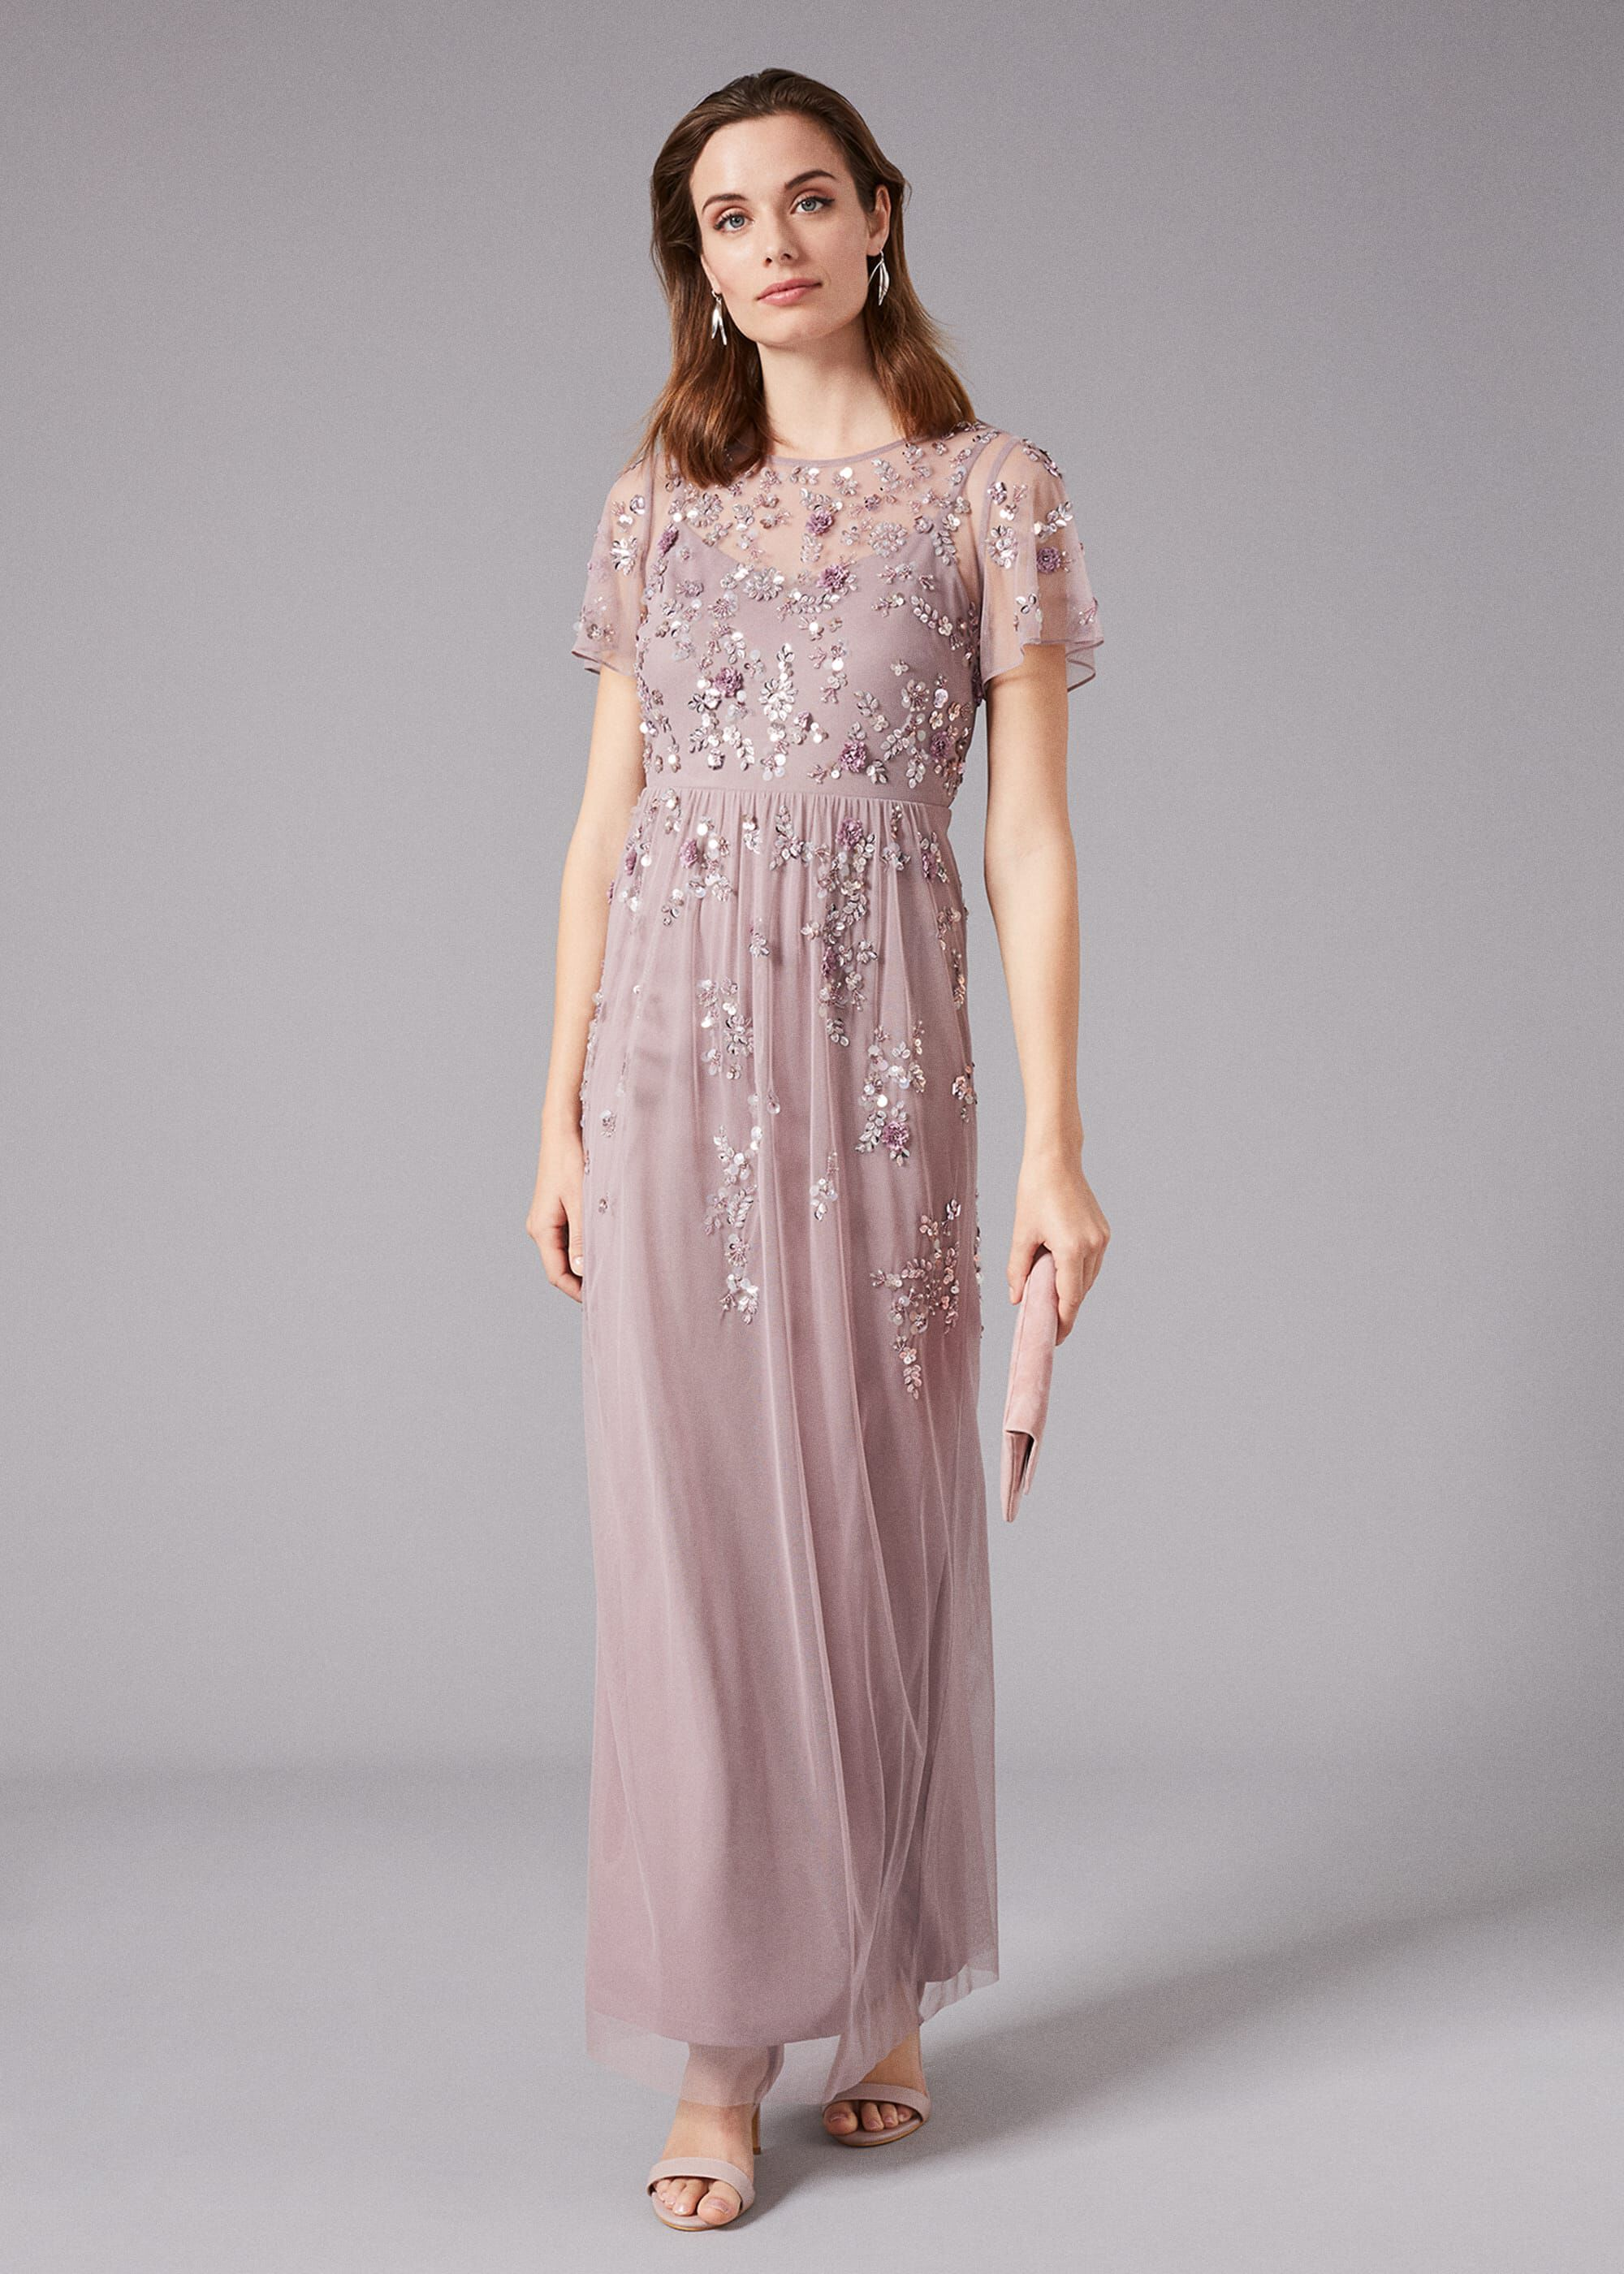 Phase Eight Shirin Embellished Maxi Dress, Purple, Maxi, Occasion Dress